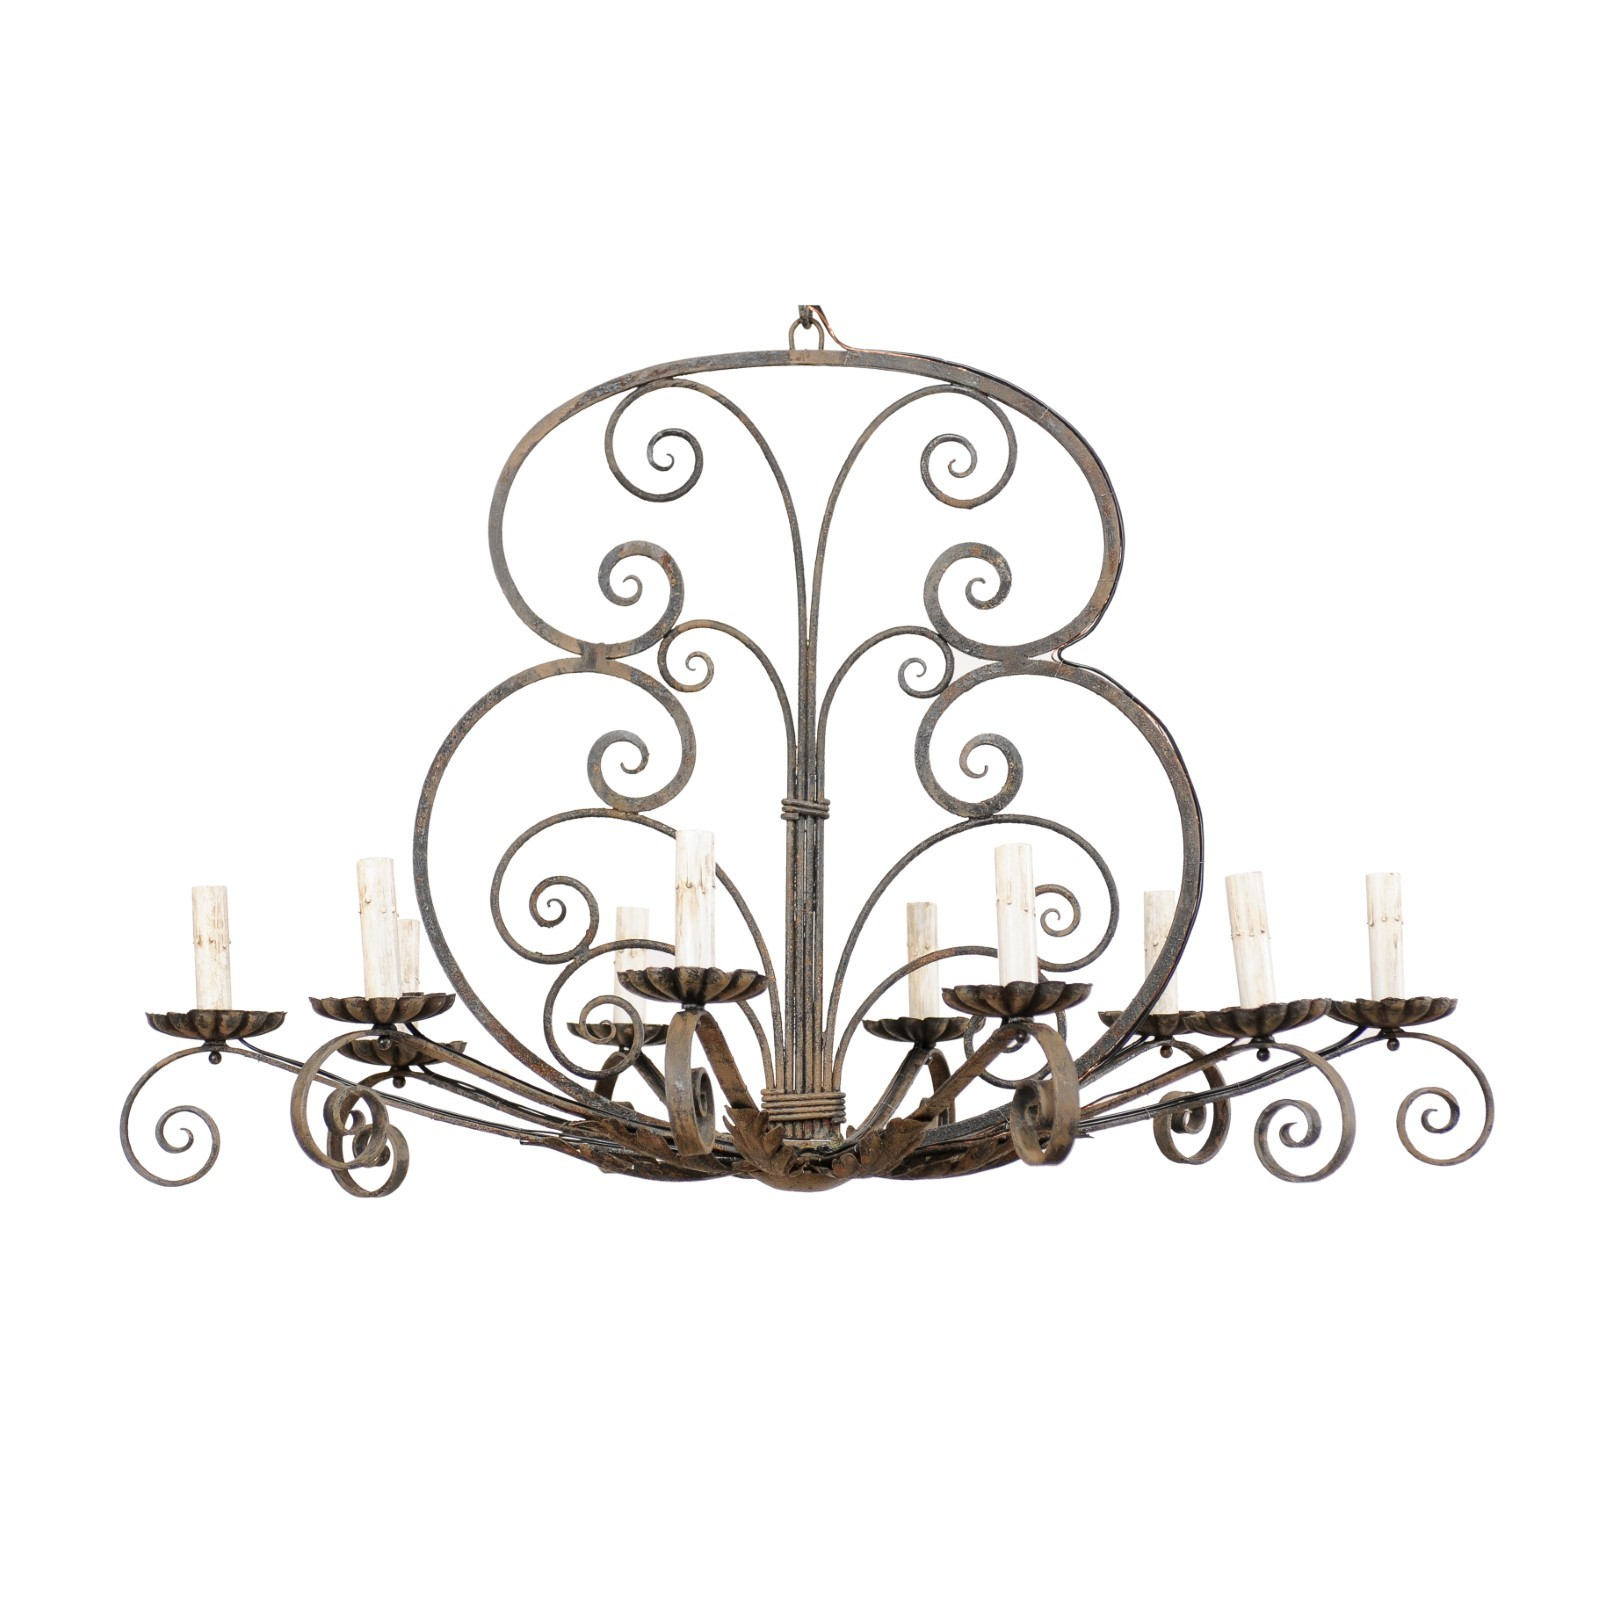 Ornate French Iron 10-Light Chandelier